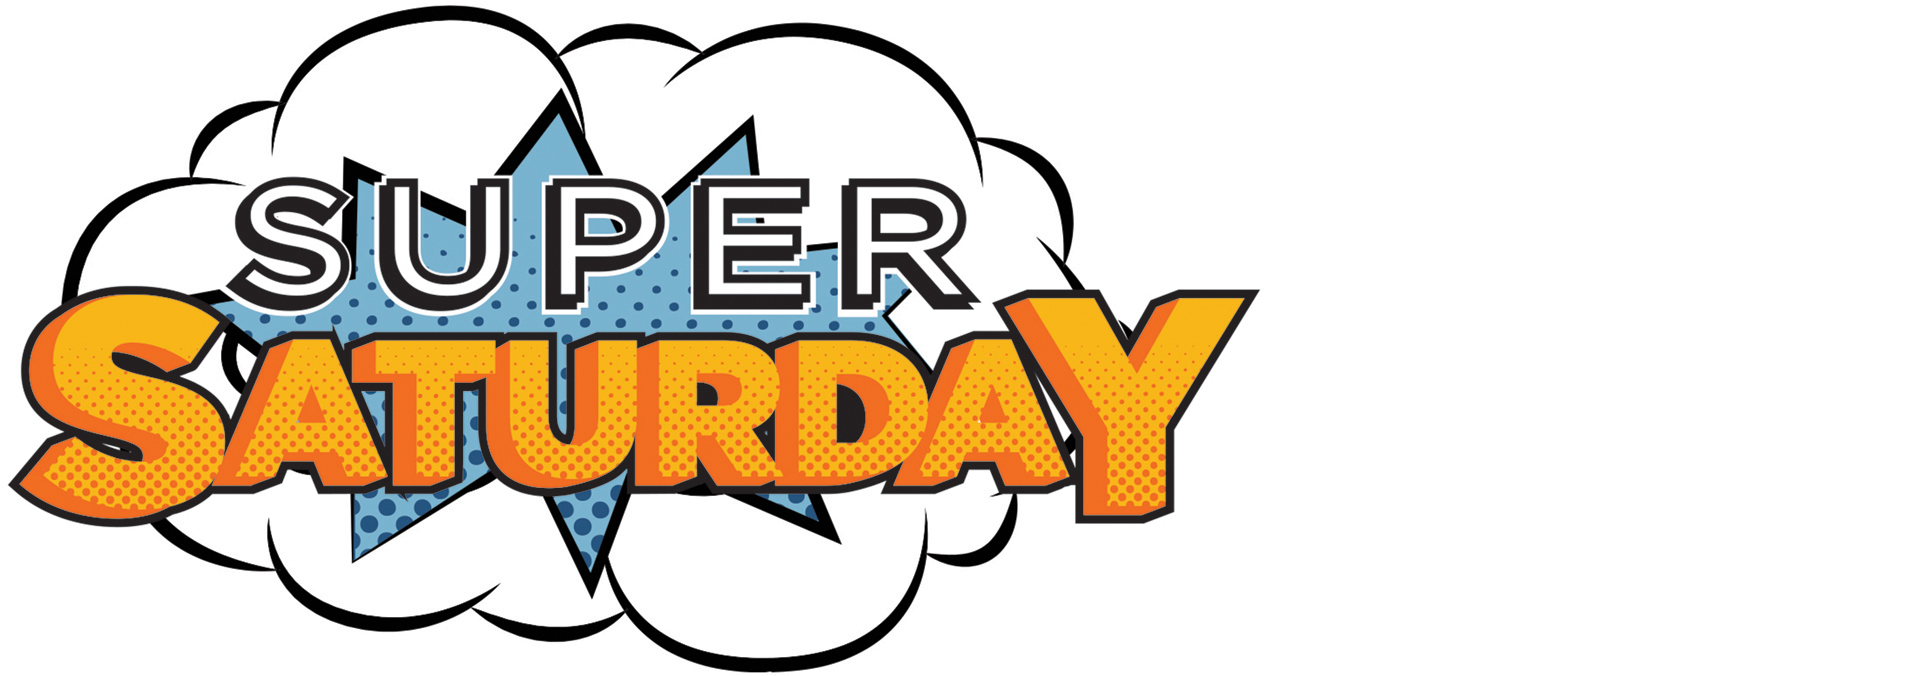 August 25th <br />is Super Saturday!